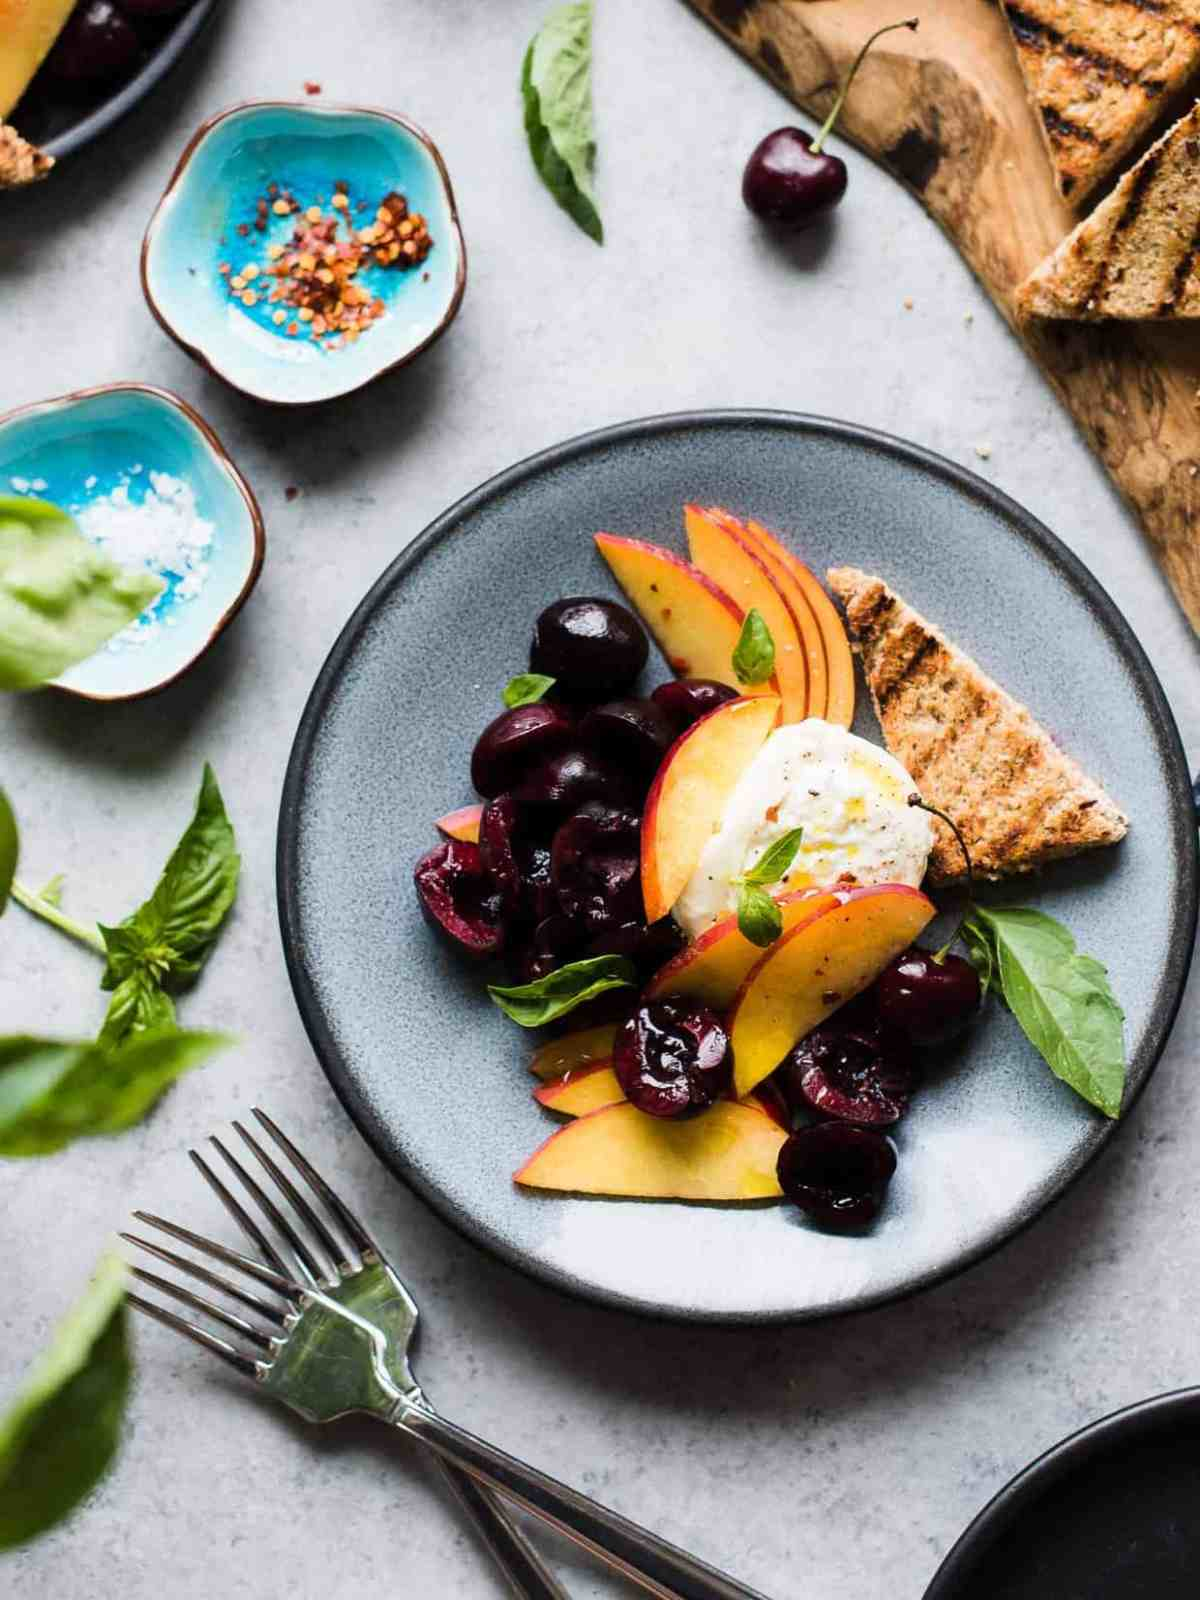 Peaches, cherries, burrata, and basil on a teal plate surrounded by fresh basil and grilled bread.